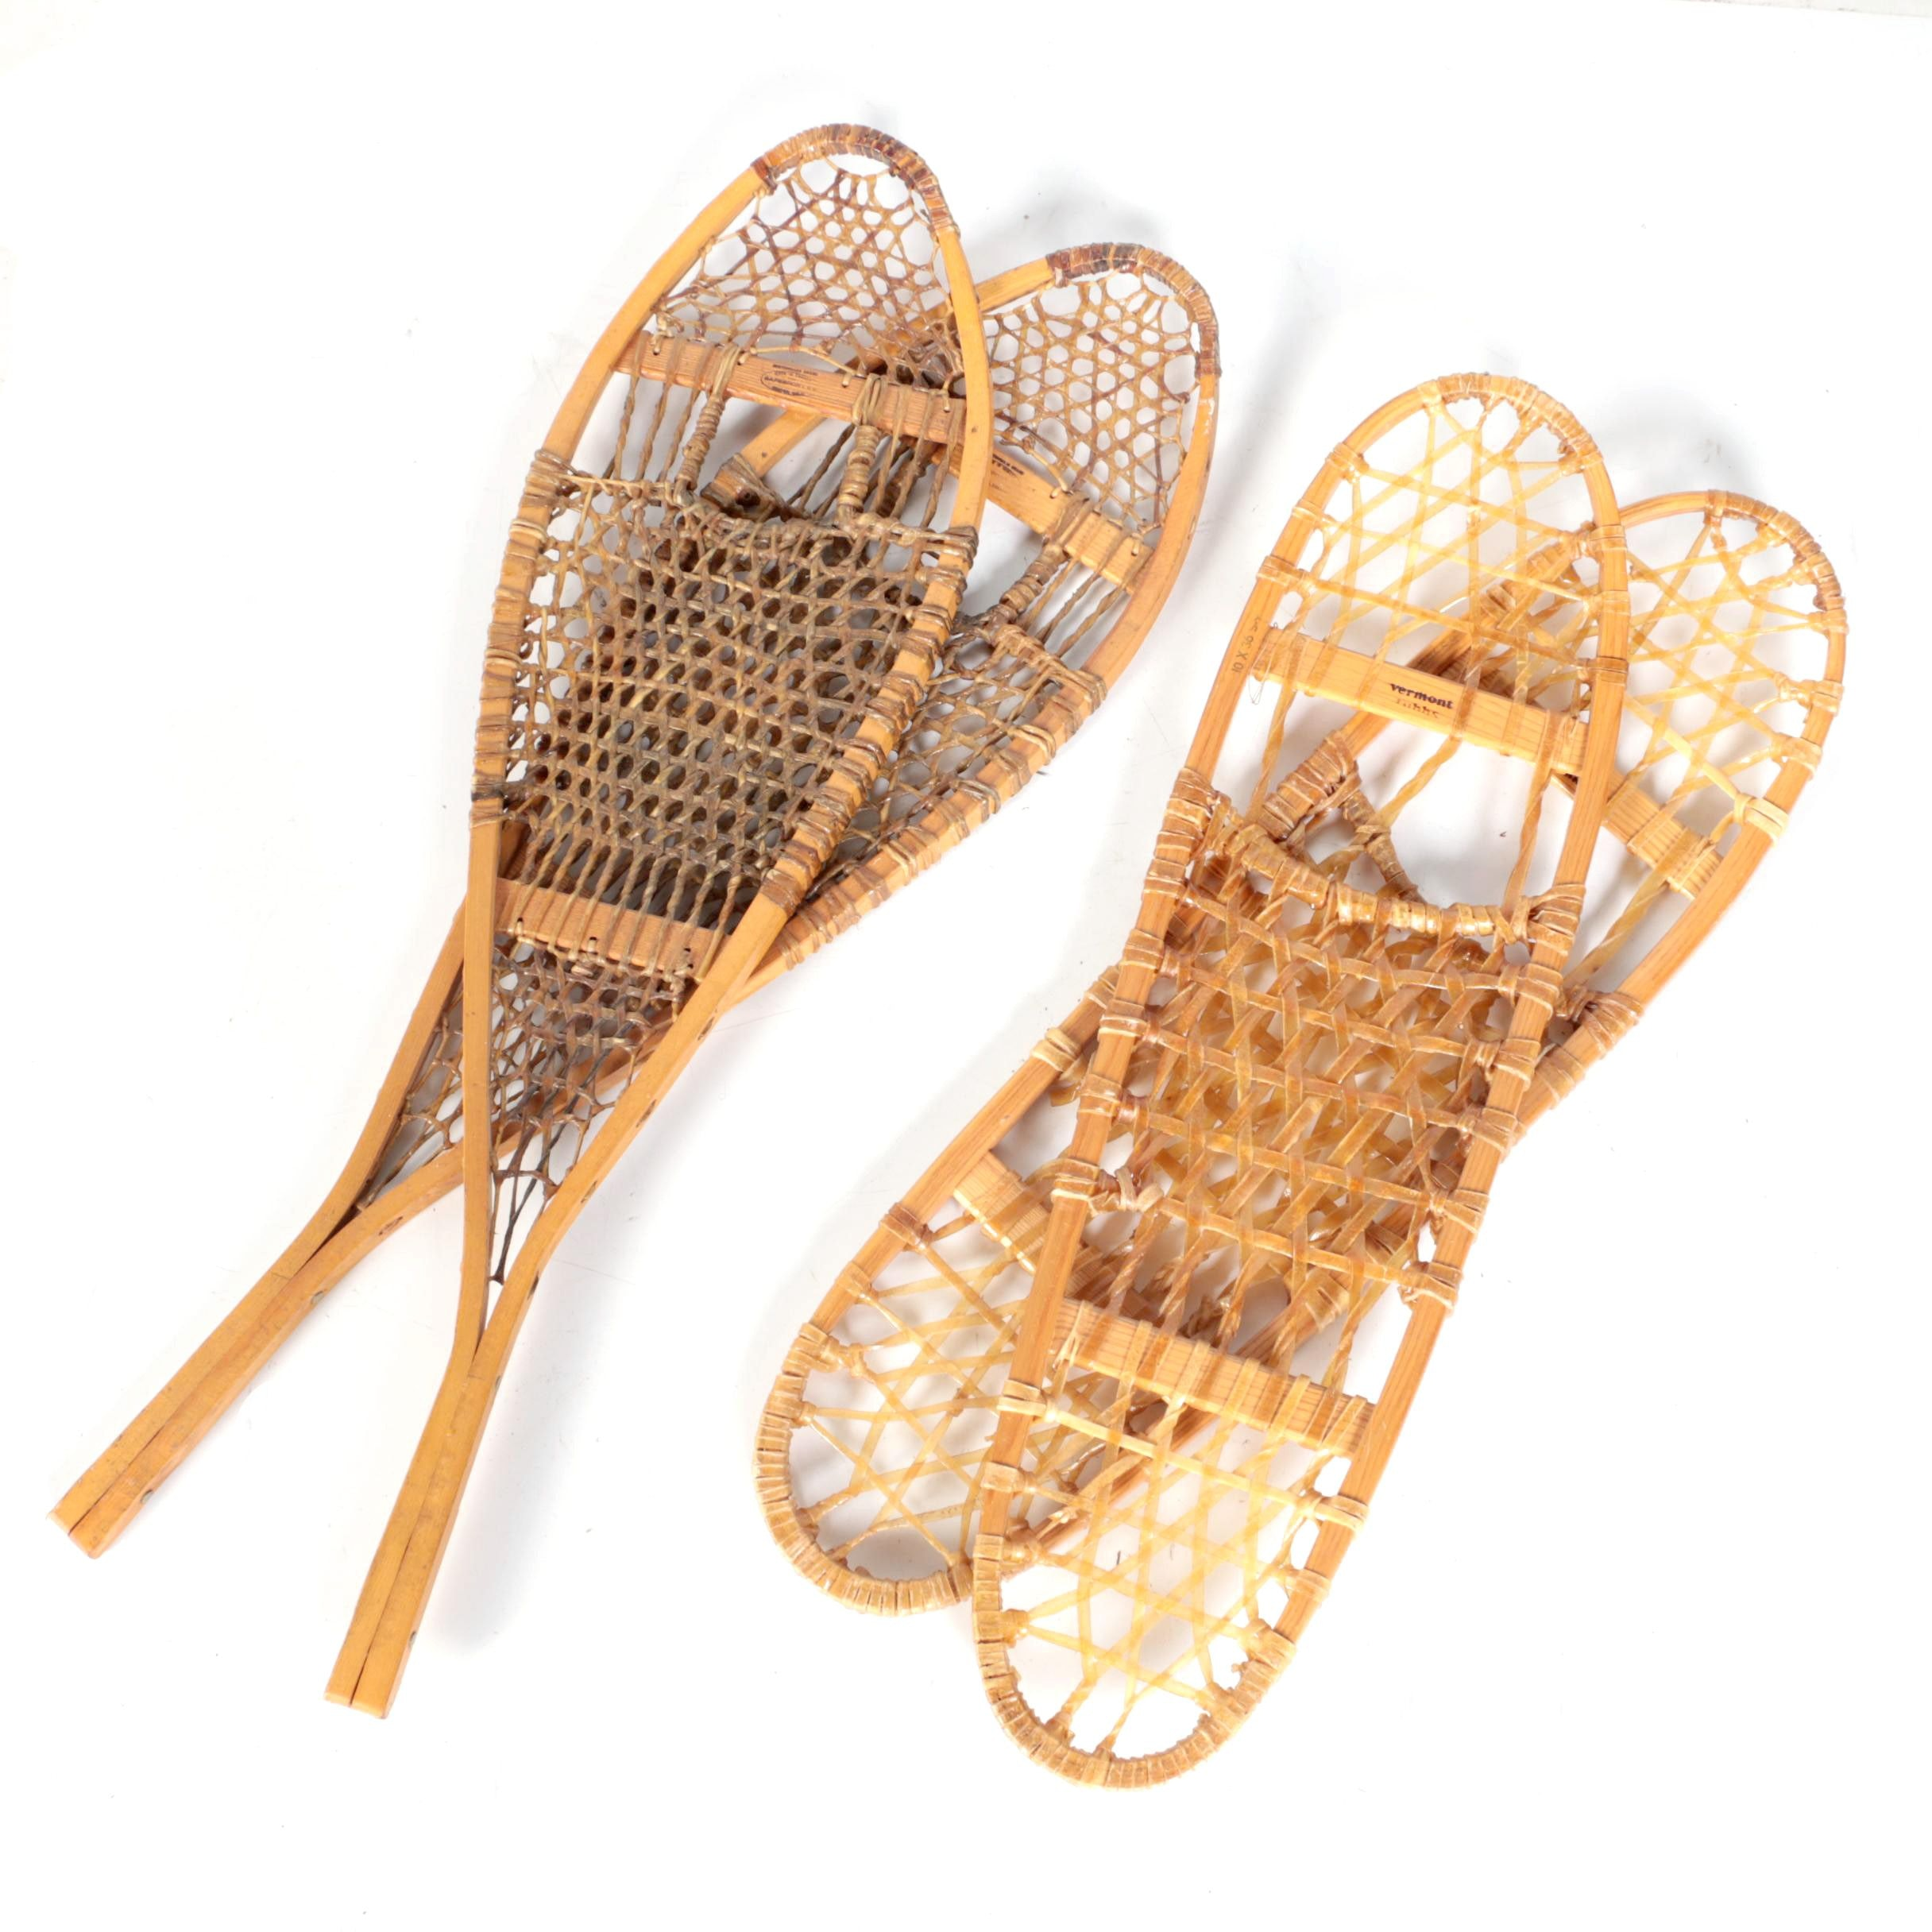 Northwoods and Vermont Tubbs Snowshoes